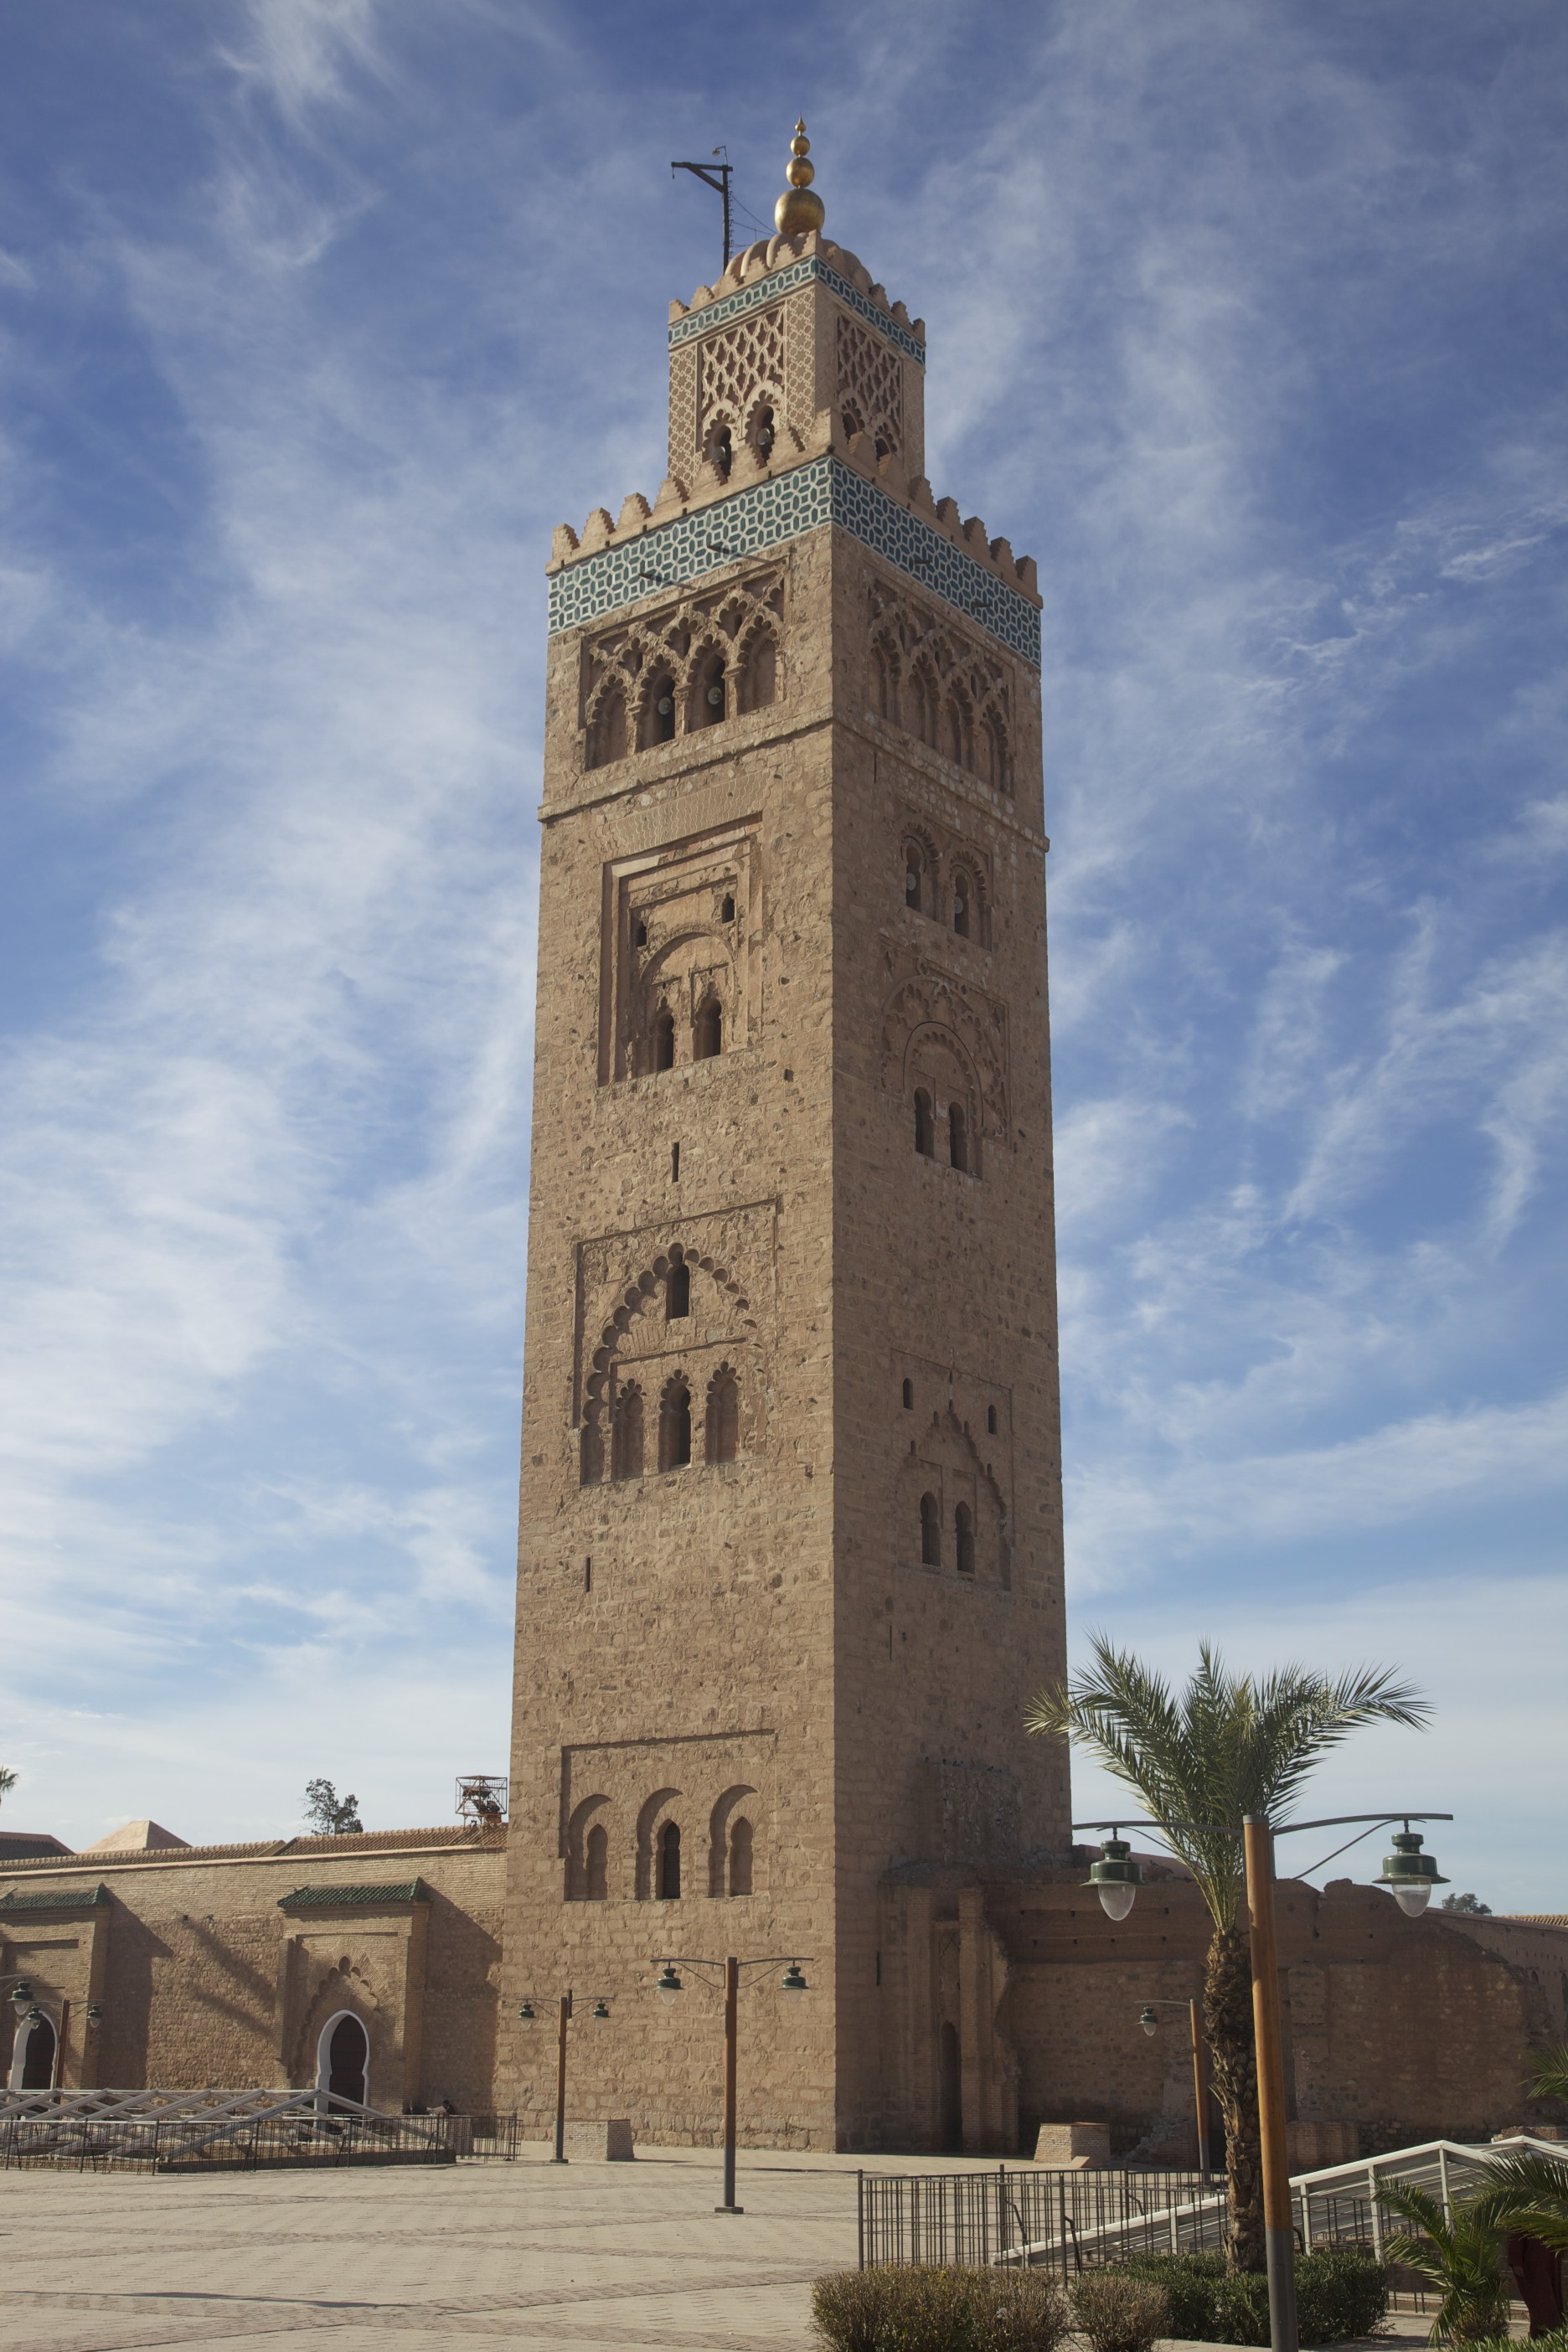 The minaret of Koutoubia Mosque in Marrakech.